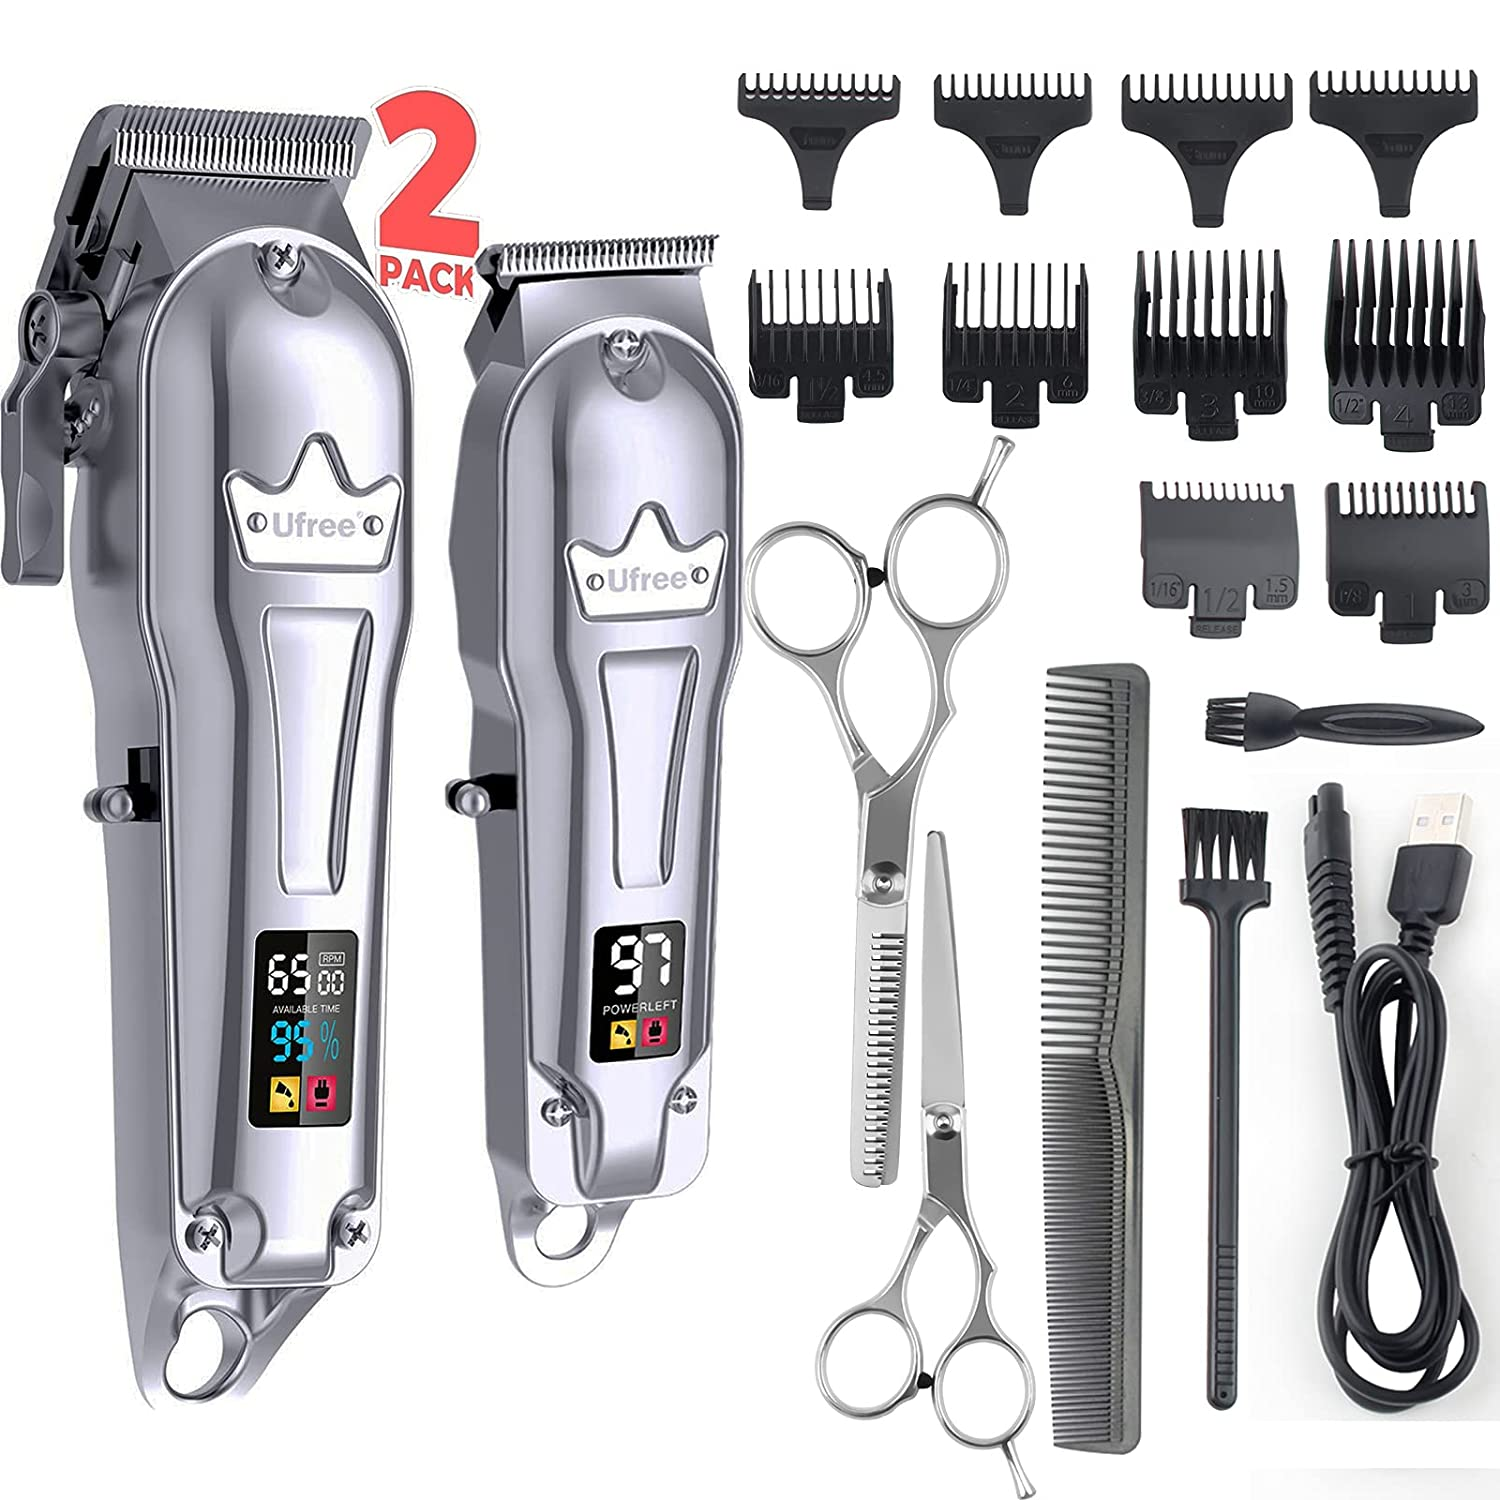 Ufree Hair Topics on TV Clippers for Men + Ranking TOP20 T-Blade Professional Trimmer Kit